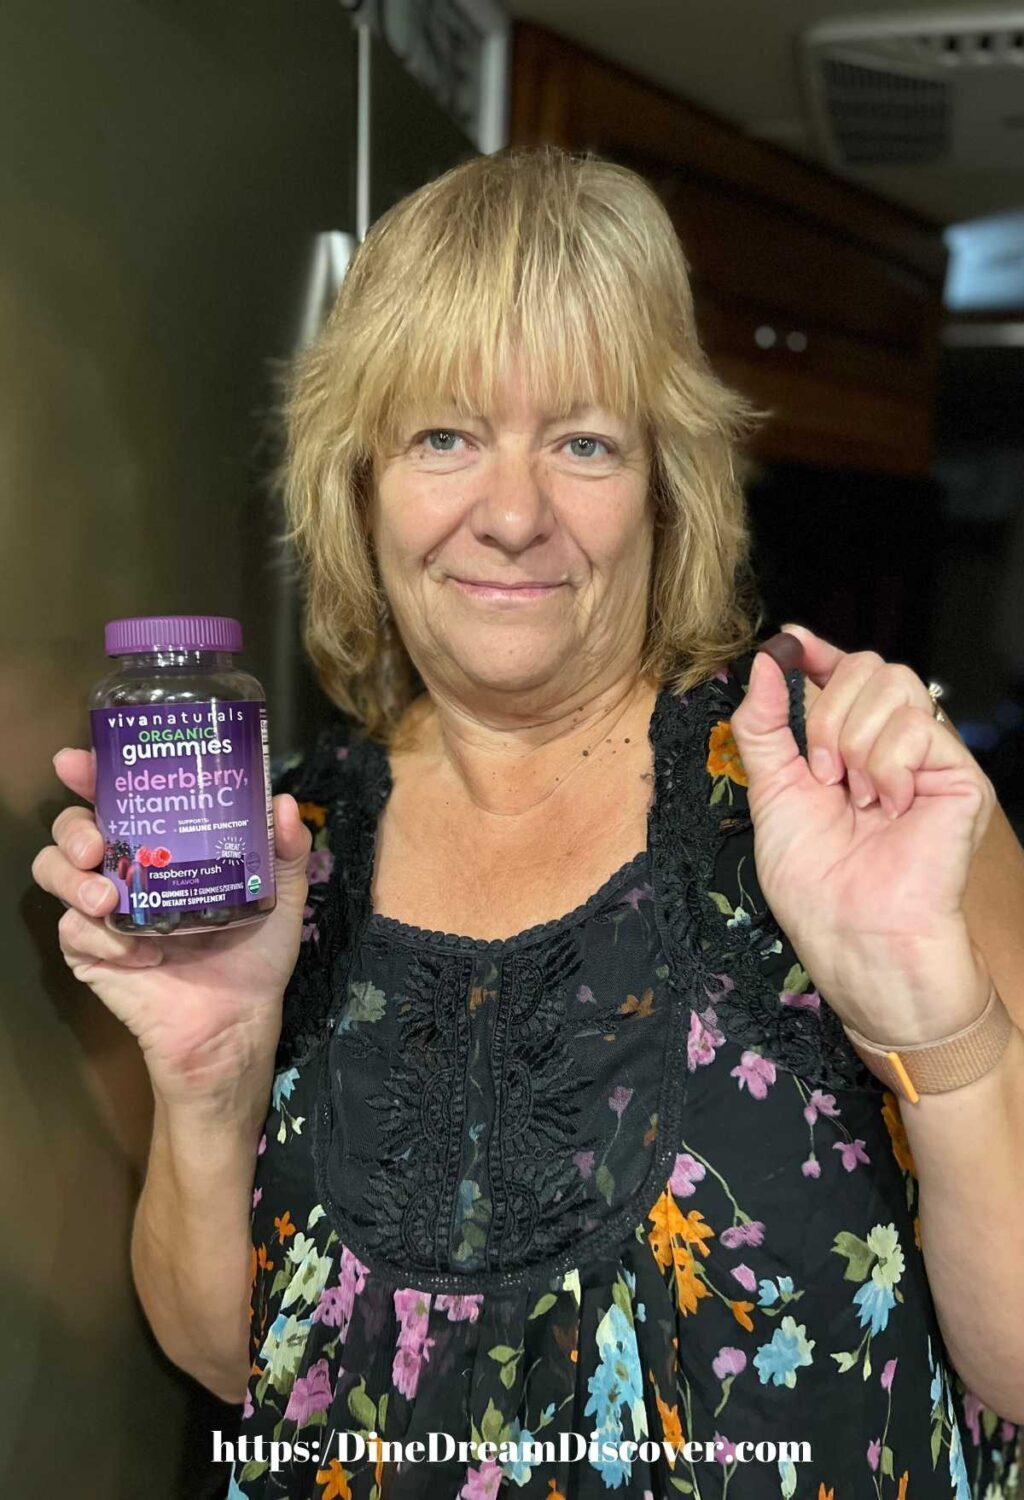 The Trifecta Black Elderberry, Vitamin C and Zinc for Your Immune System